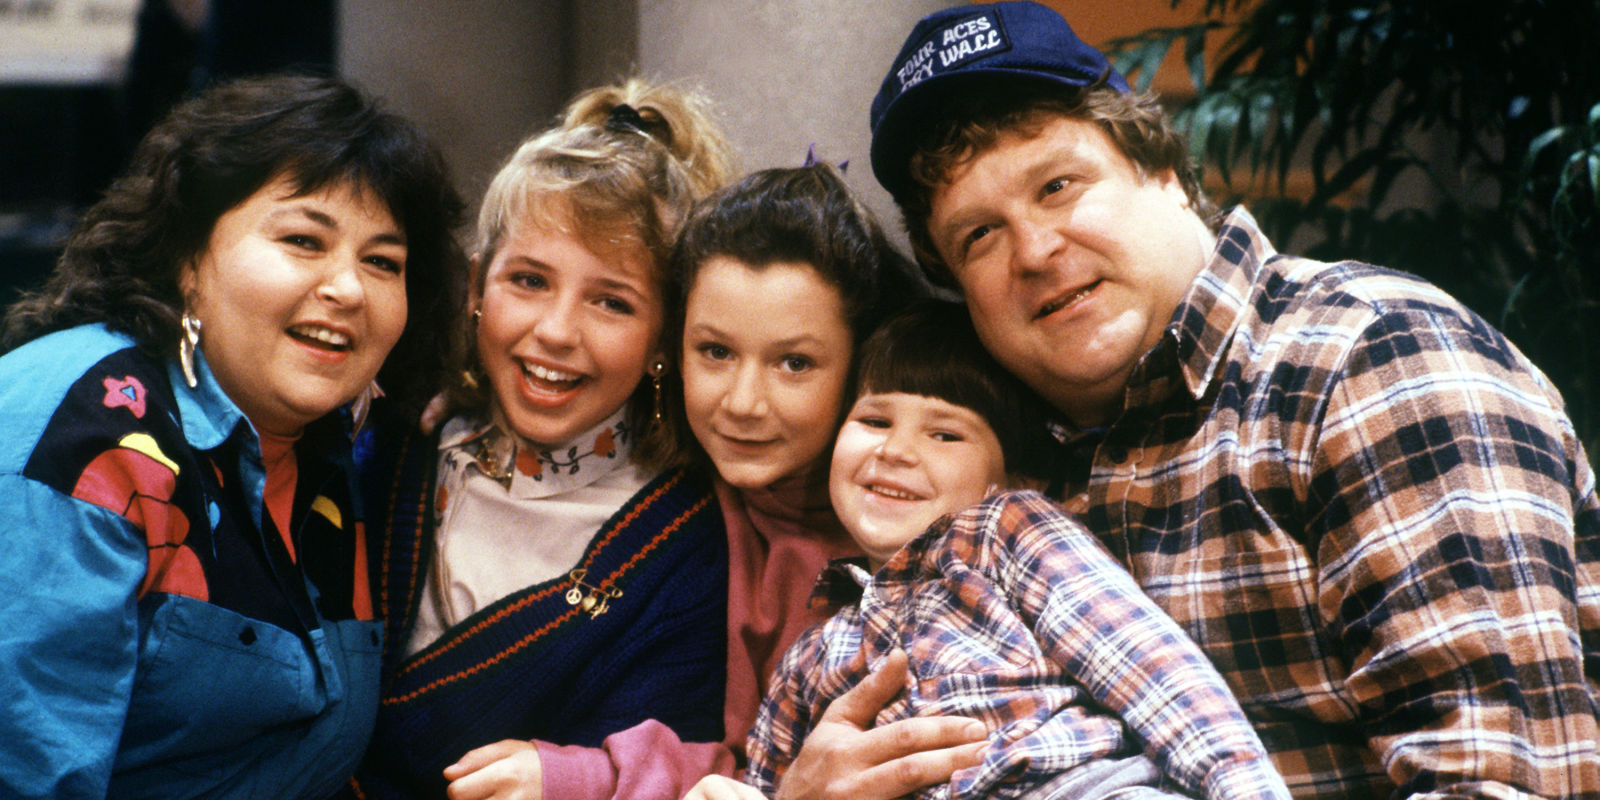 John Goodman and the cast of Roseanne